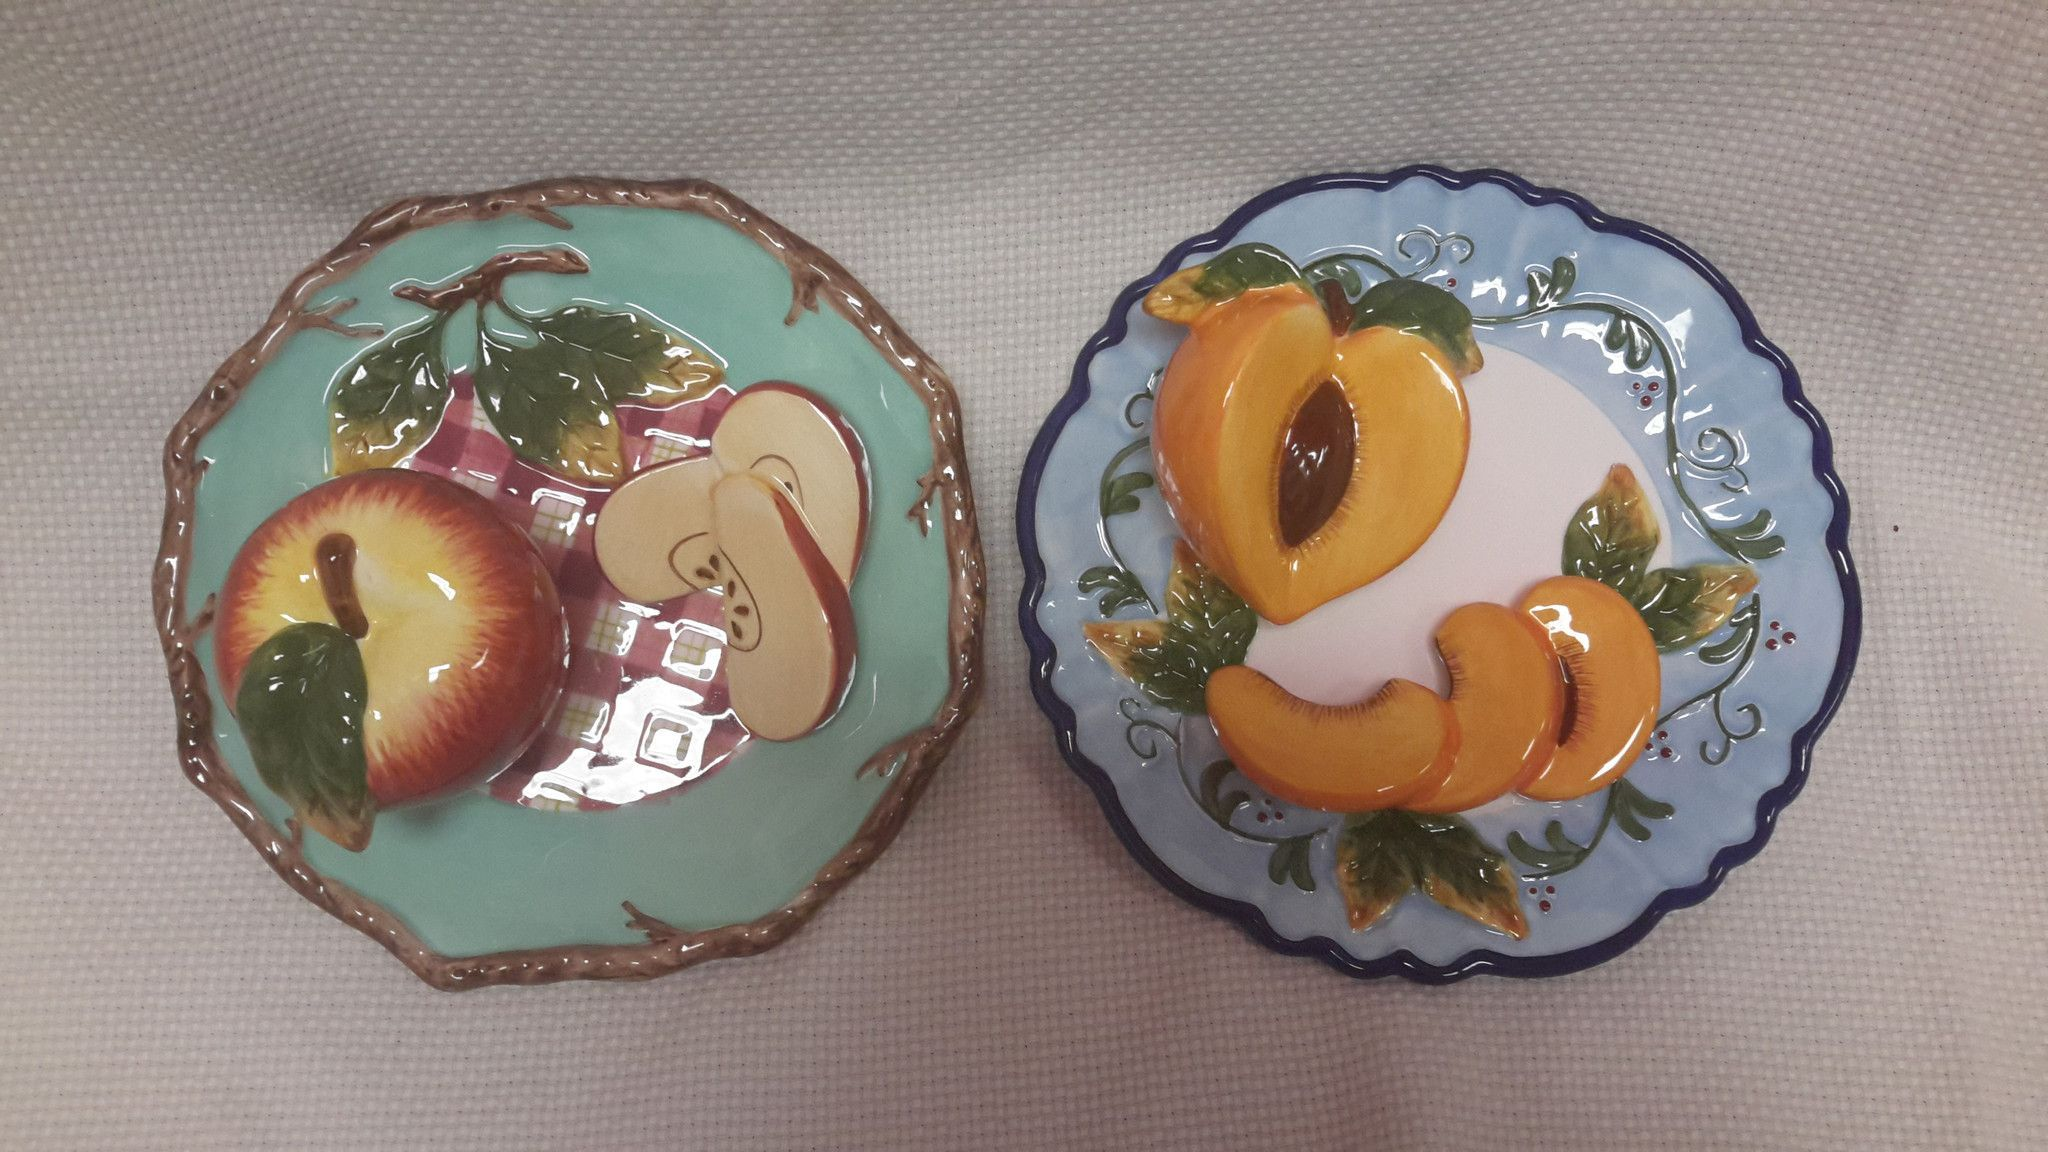 Bella Casa Ganz Wall Plates 3d Fruit Products Plates On Wall